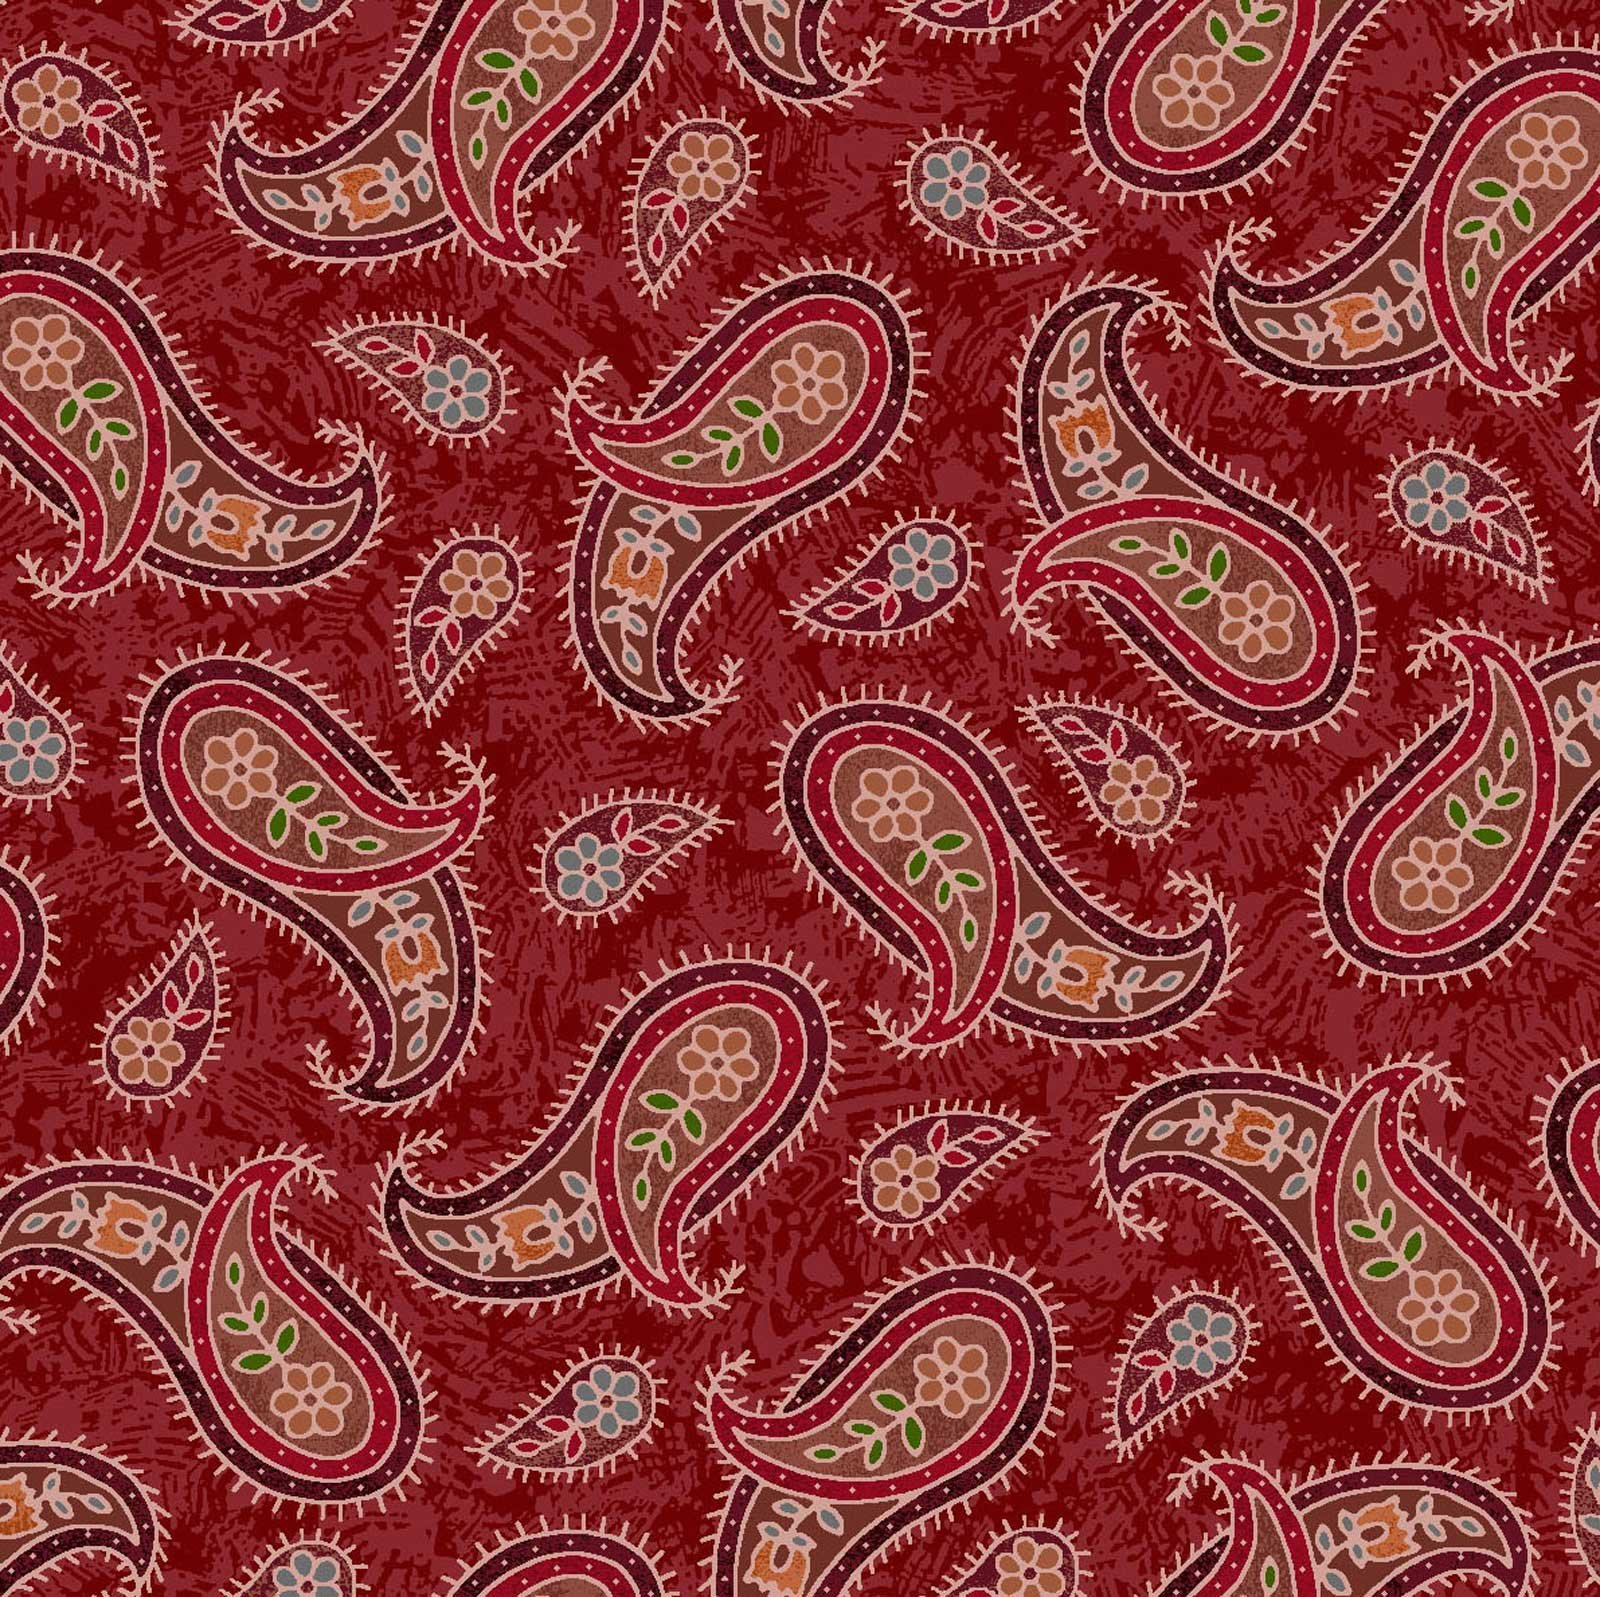 Horse Play 60-12801 Red Paisley